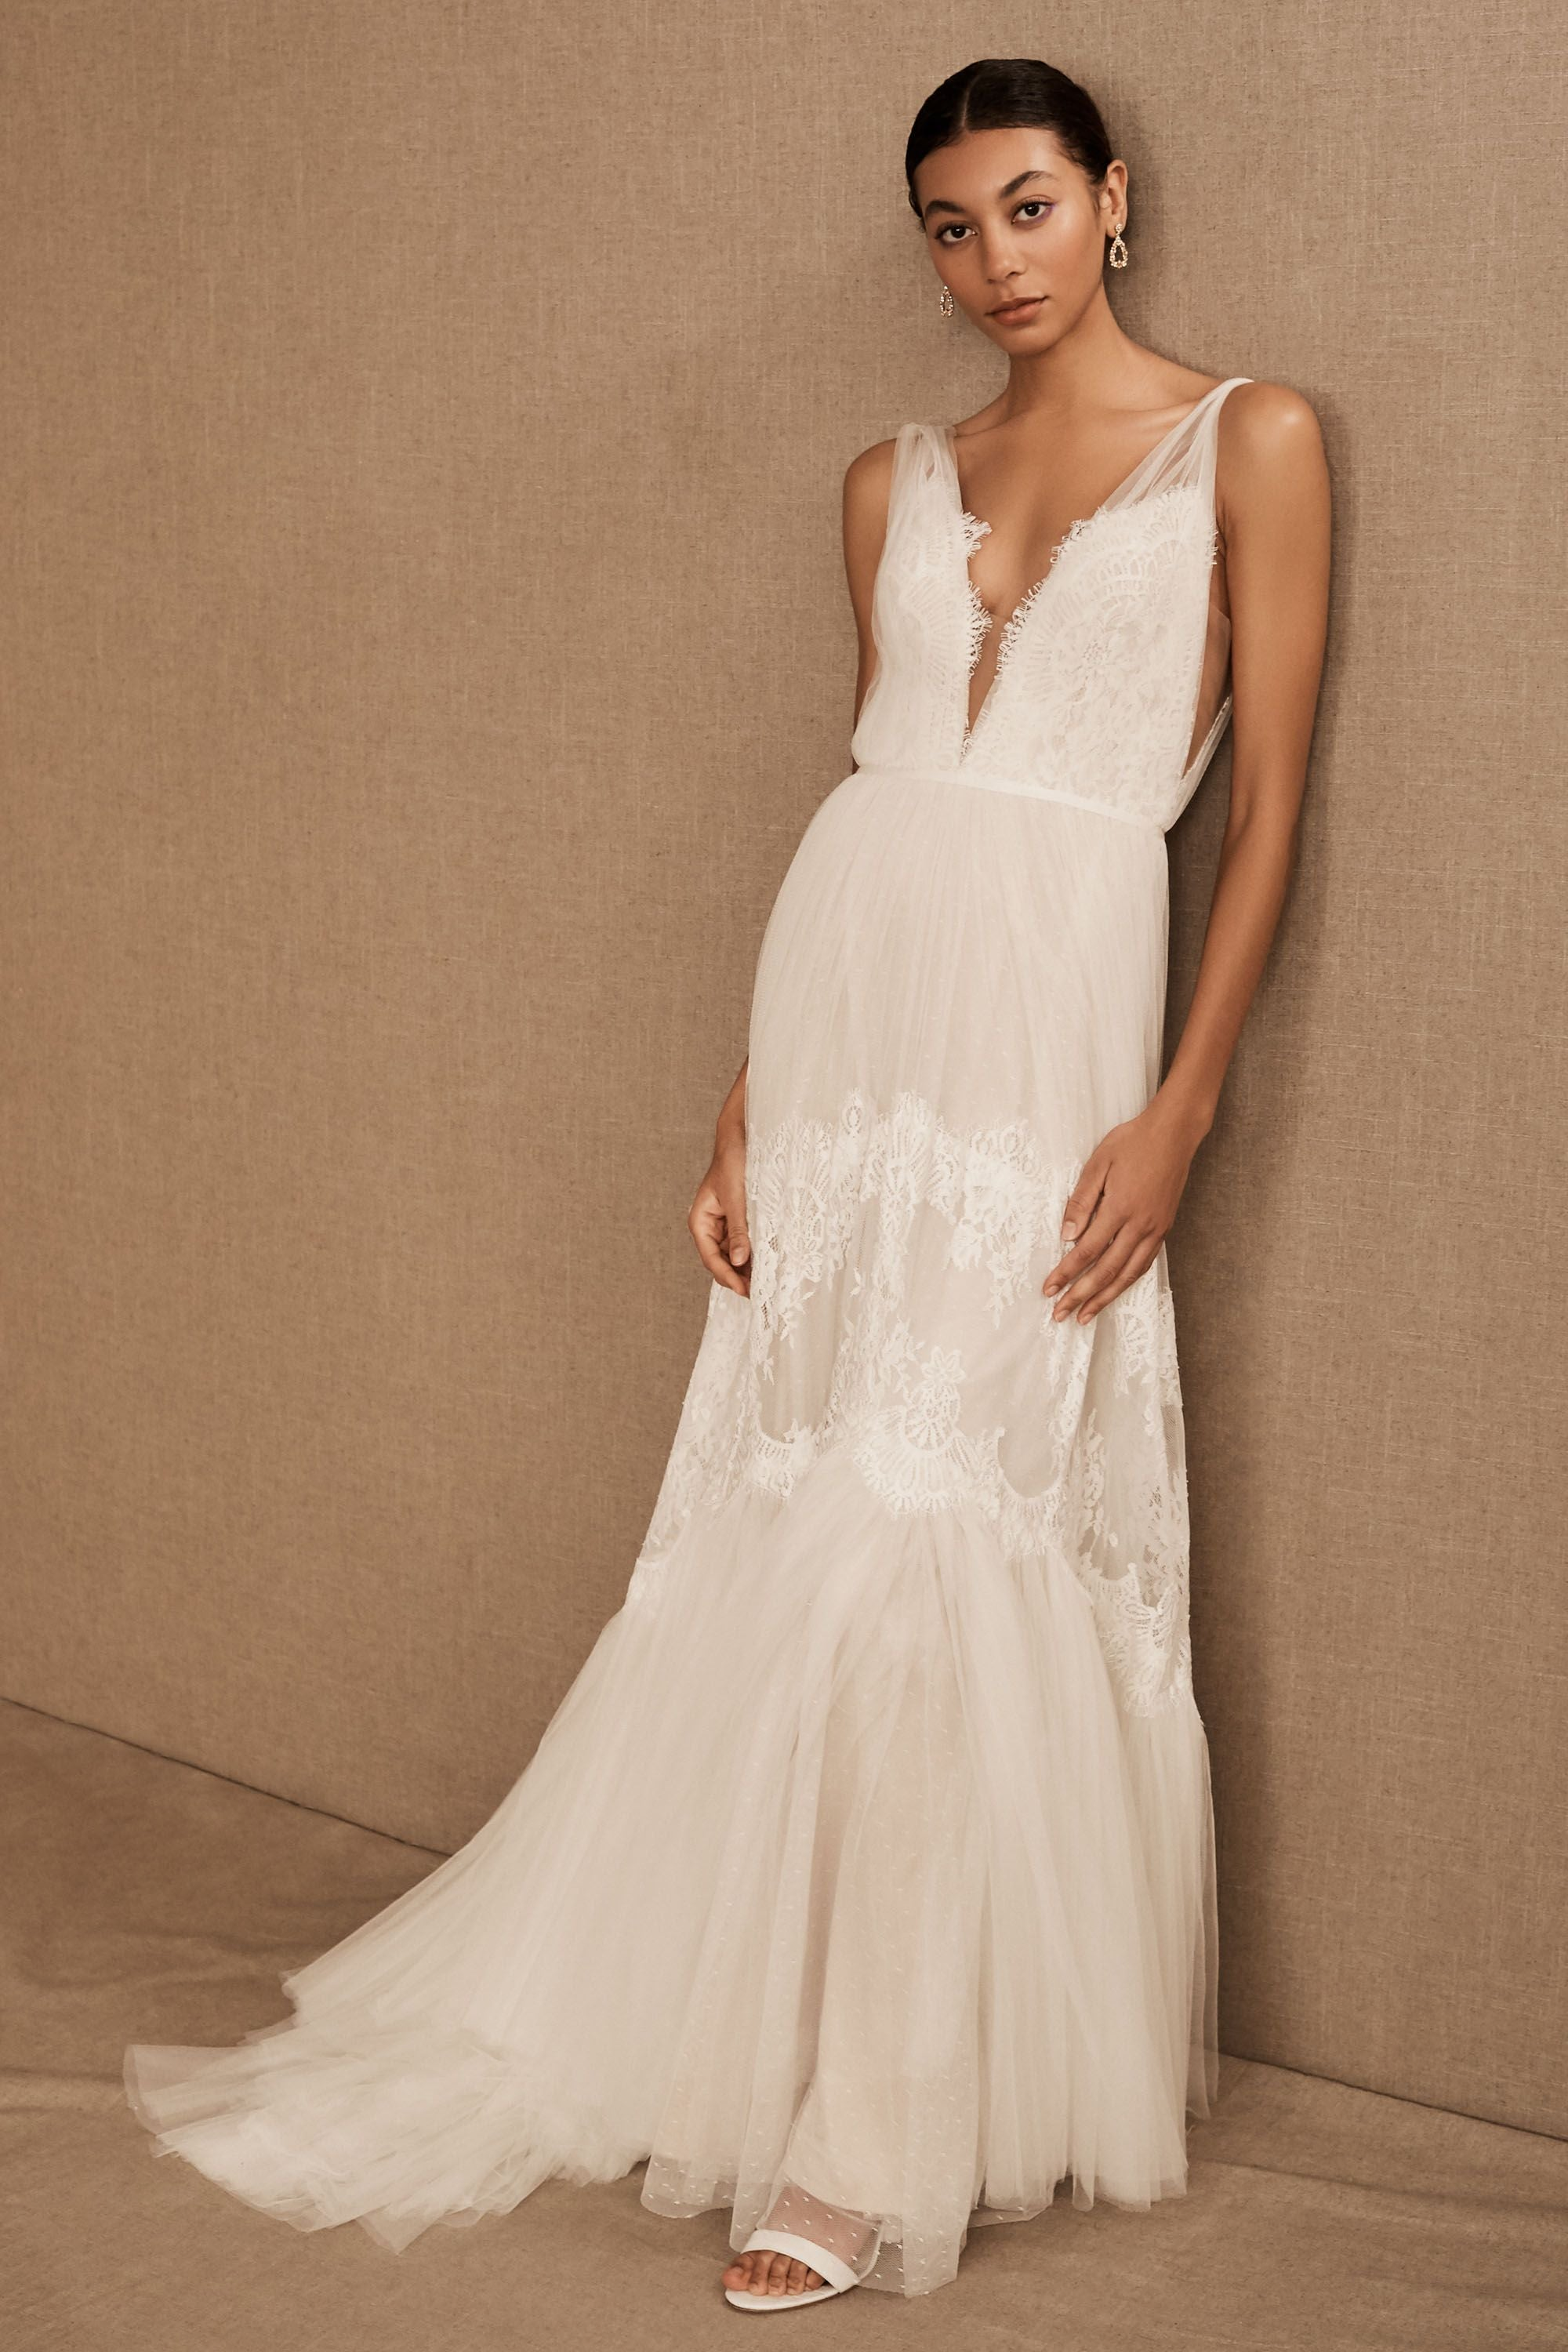 BHLDN Willowby Betony Clementine Gown Size 4 - Defects